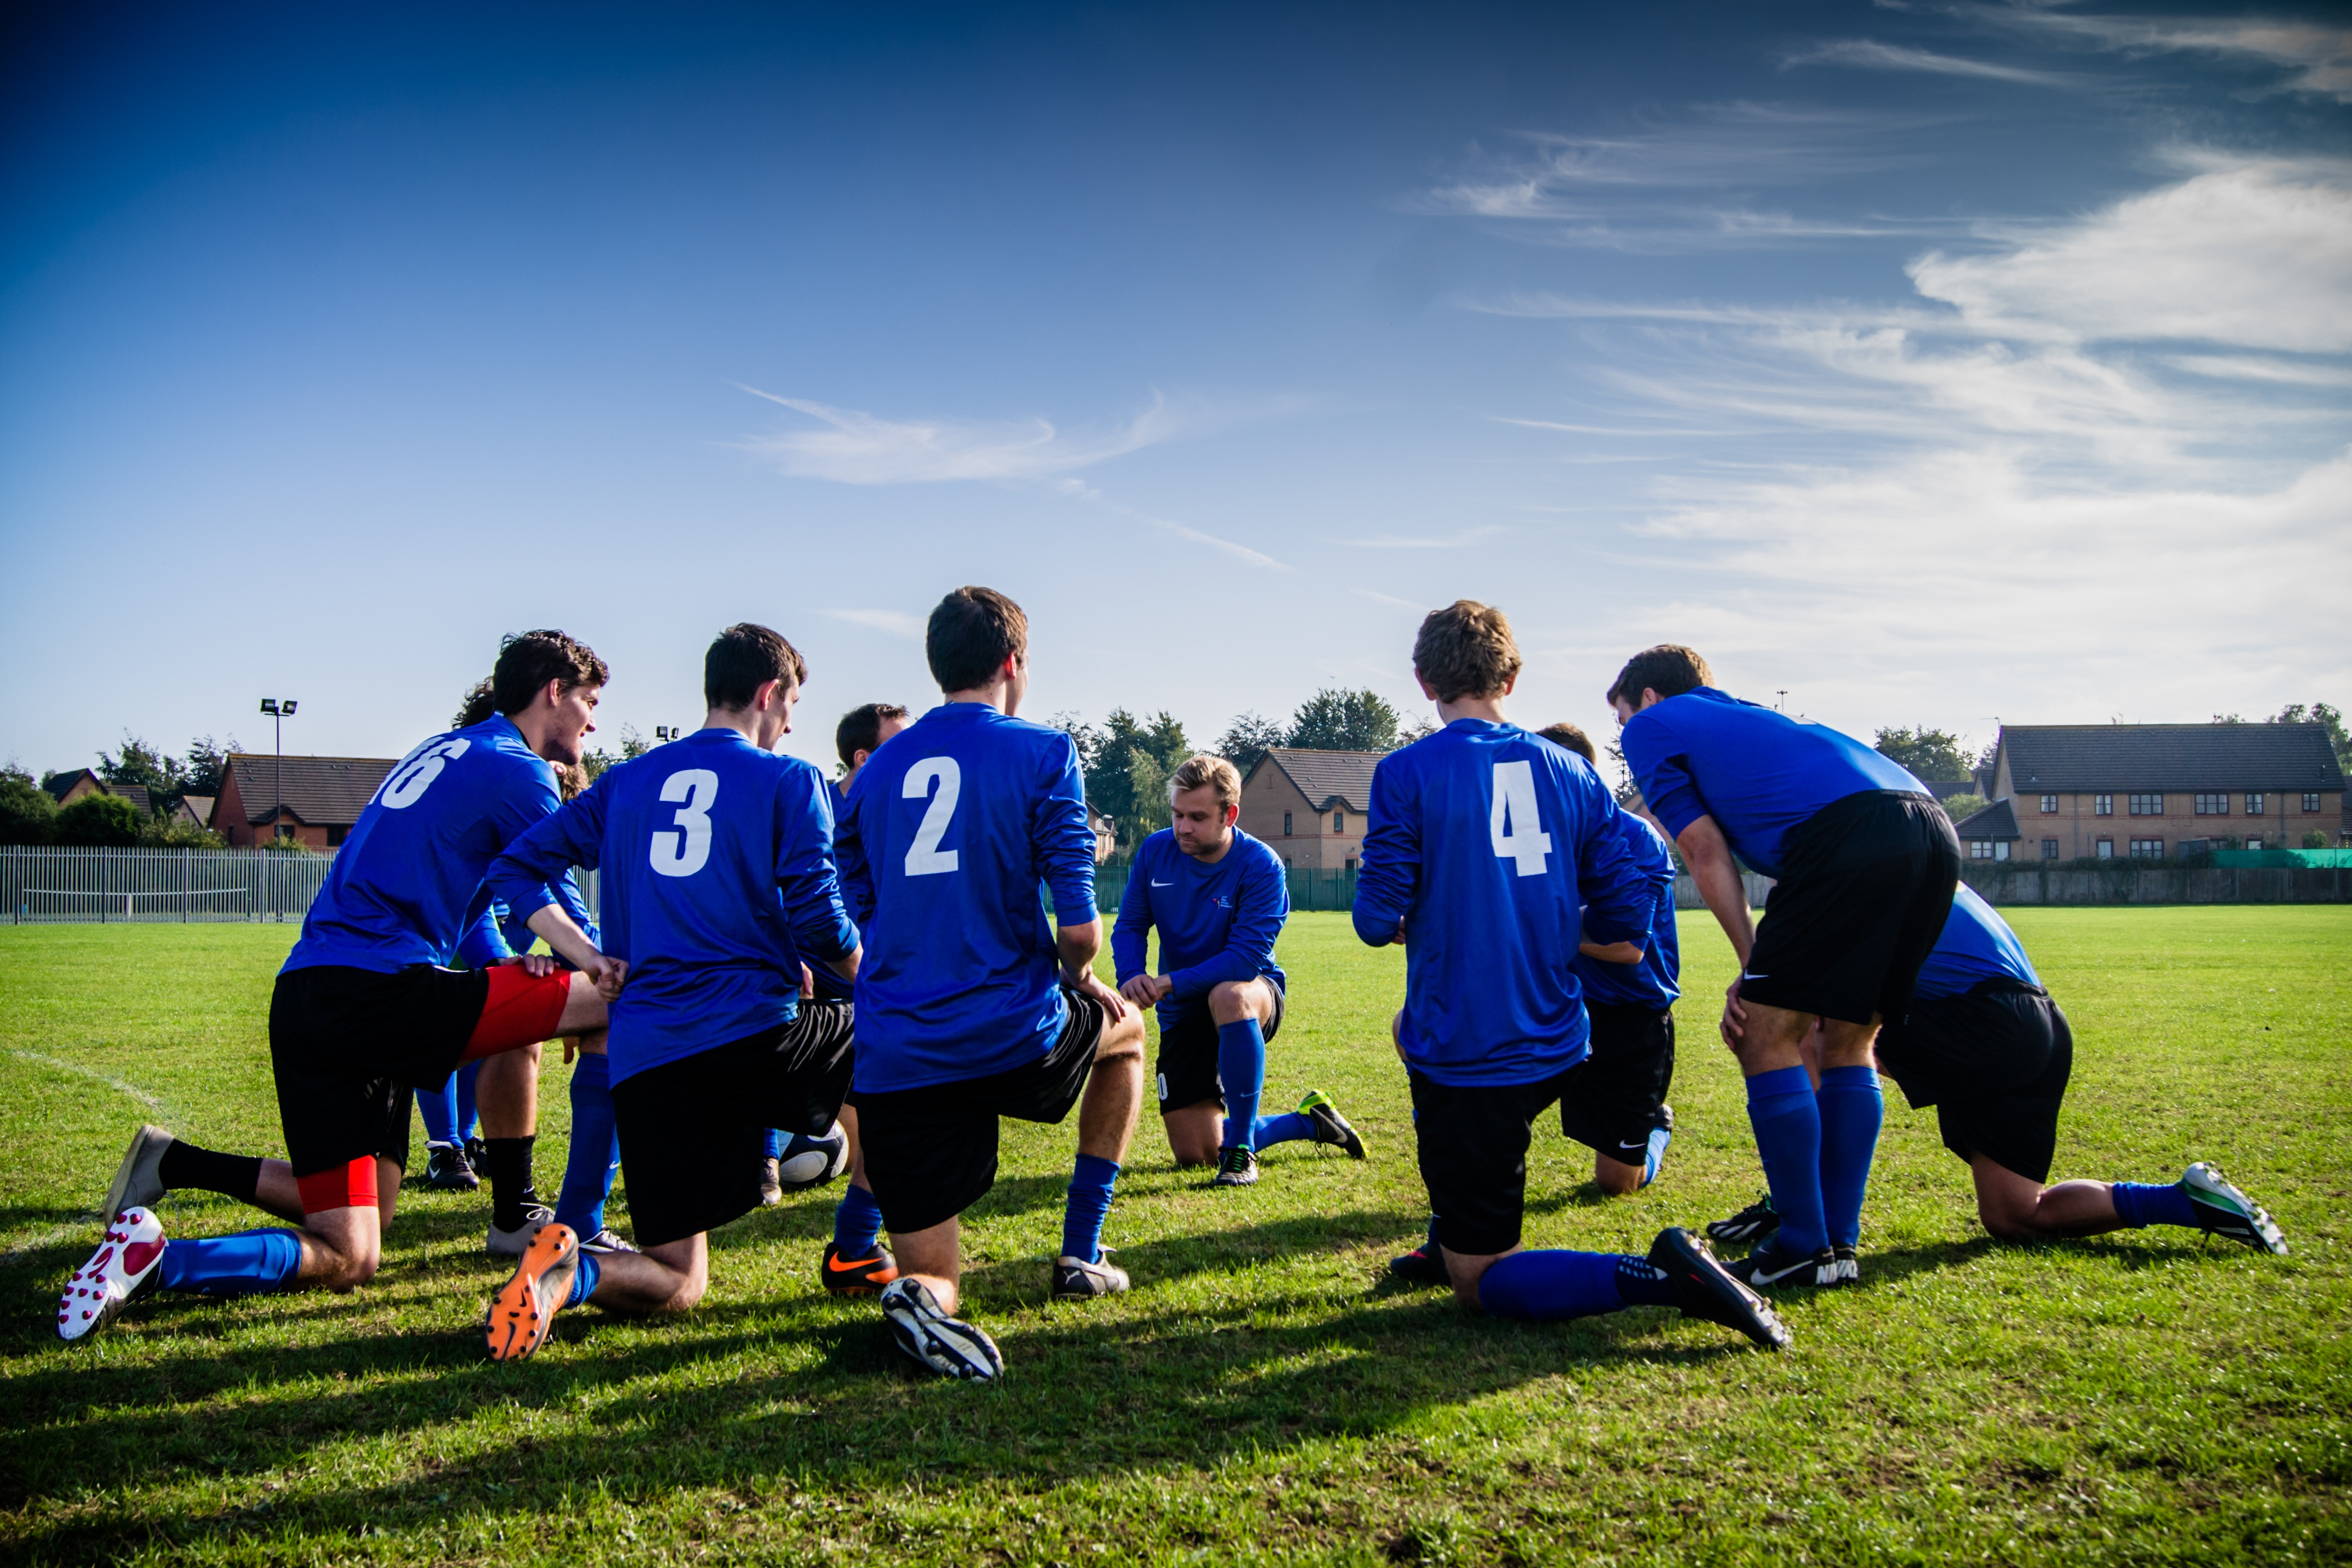 football pictures pexels free stock photos